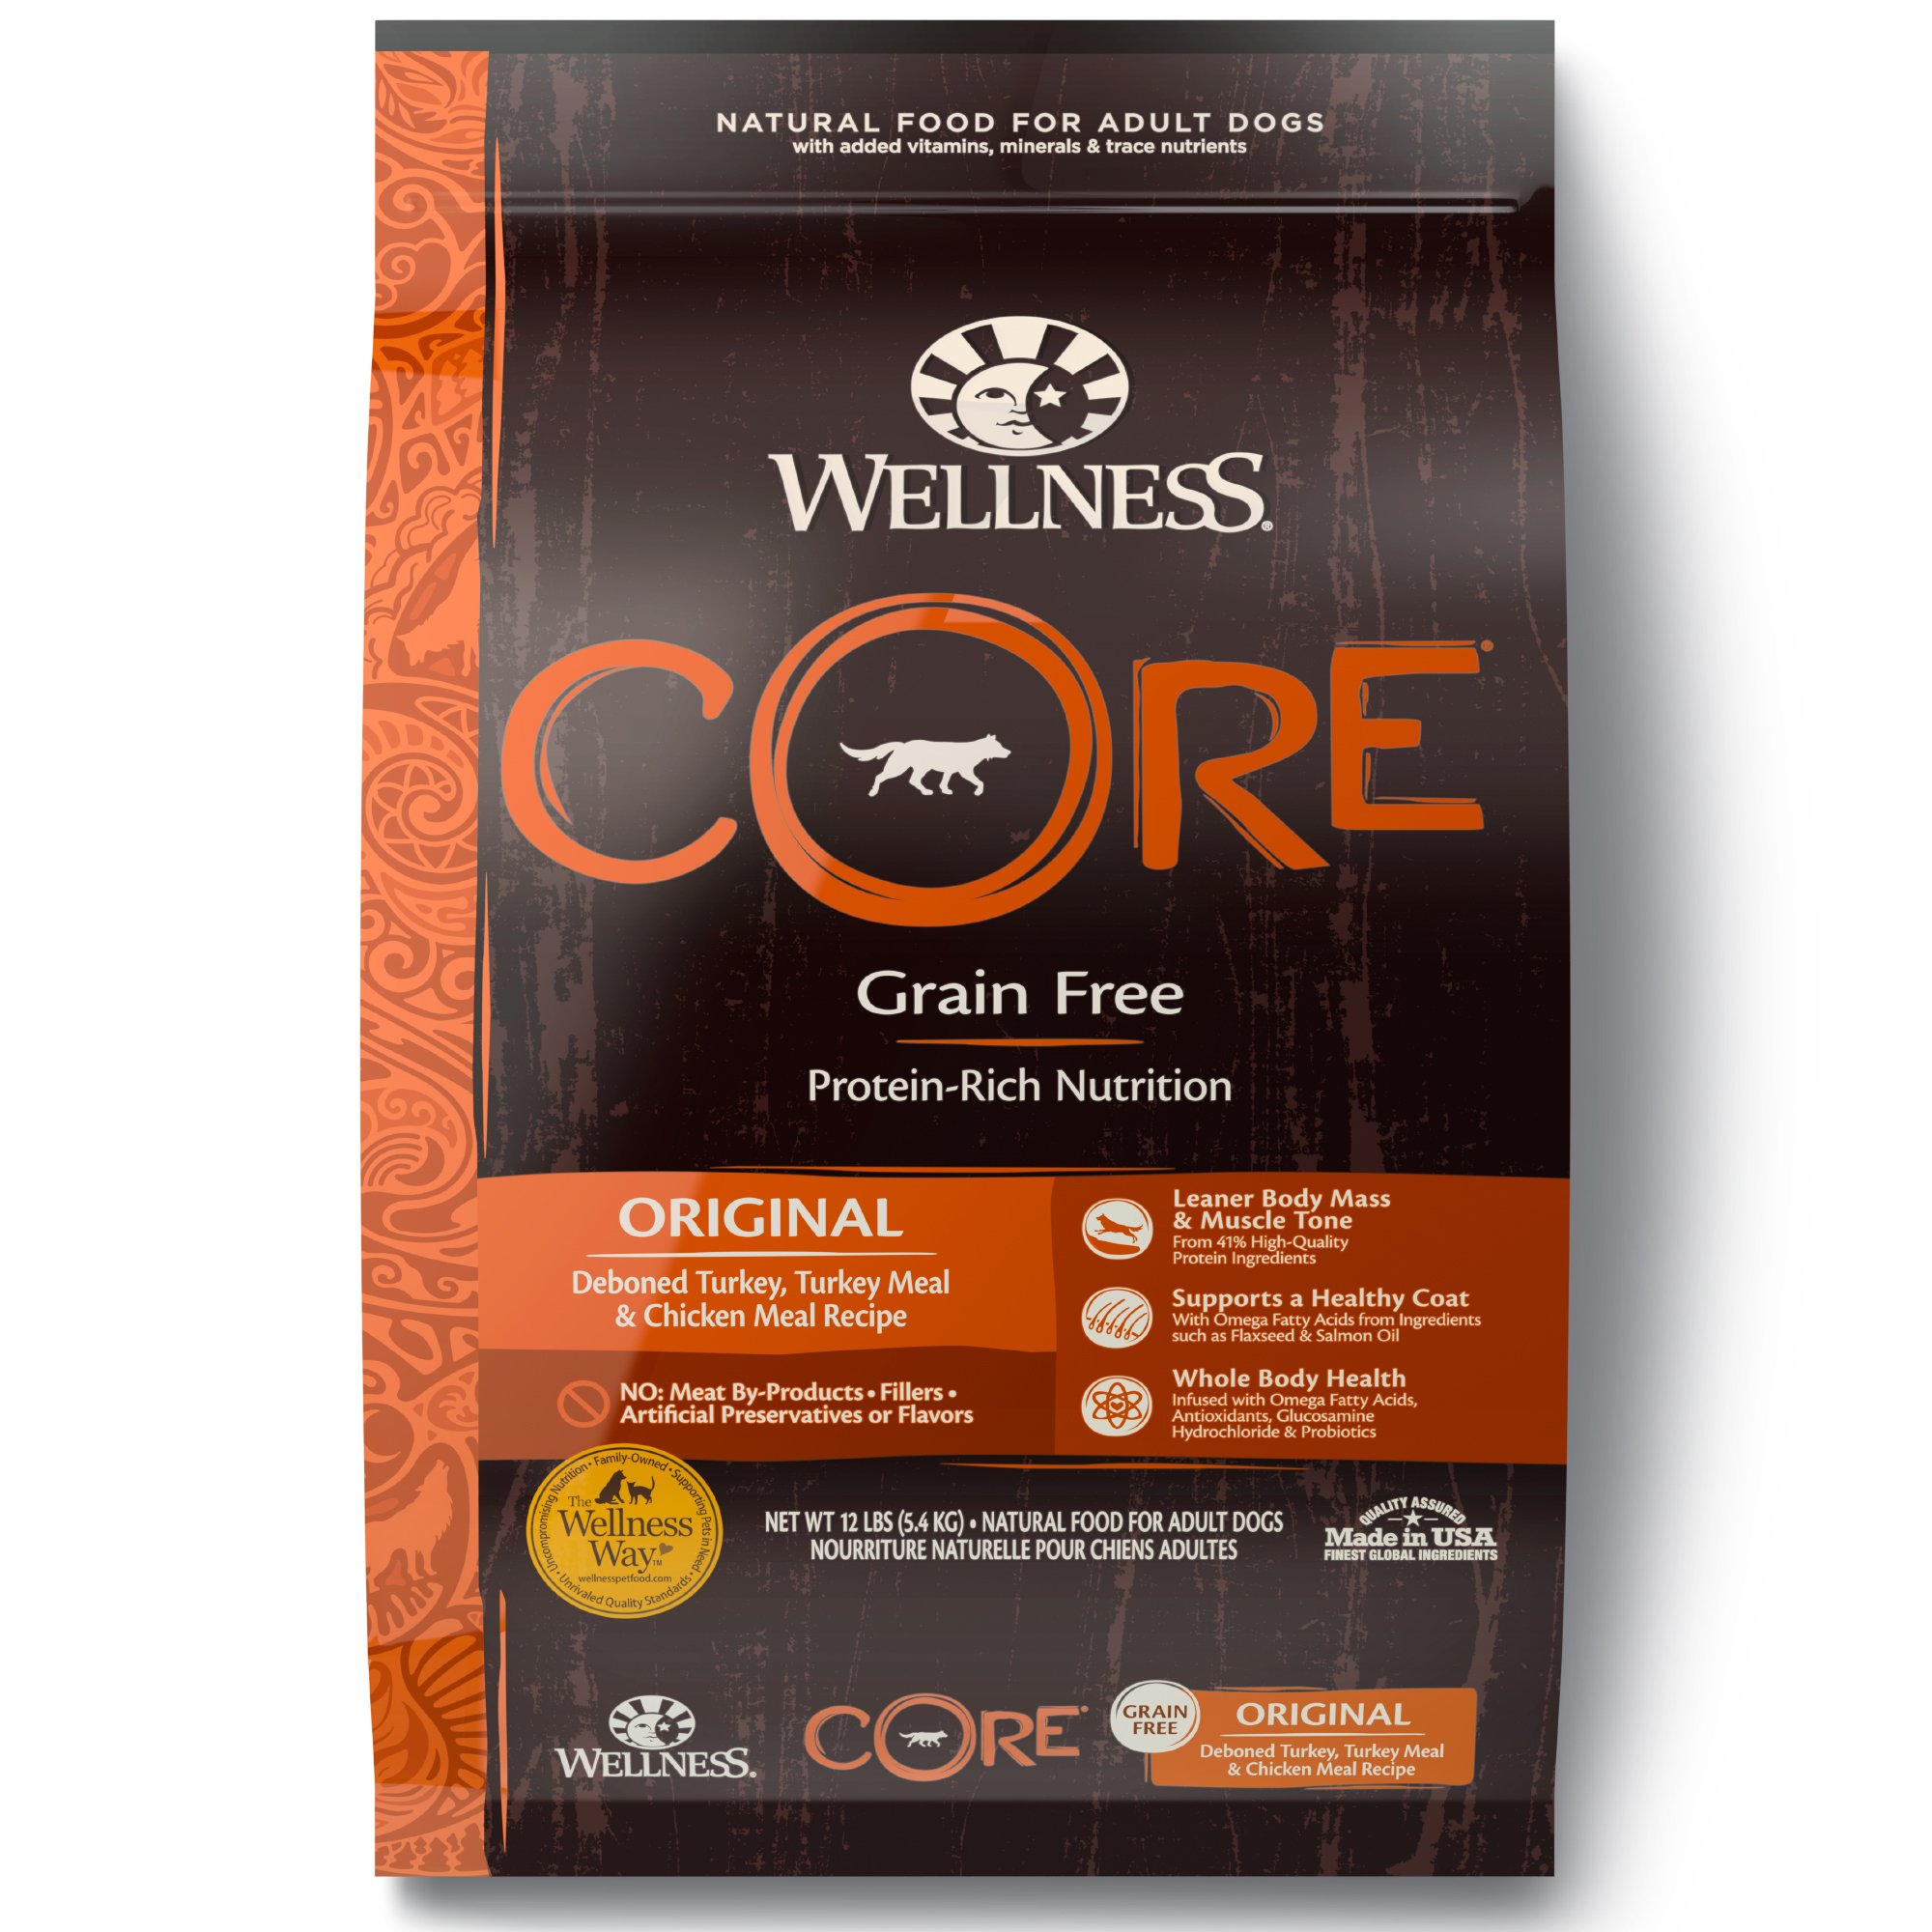 Wellness Core Dry Food Dog